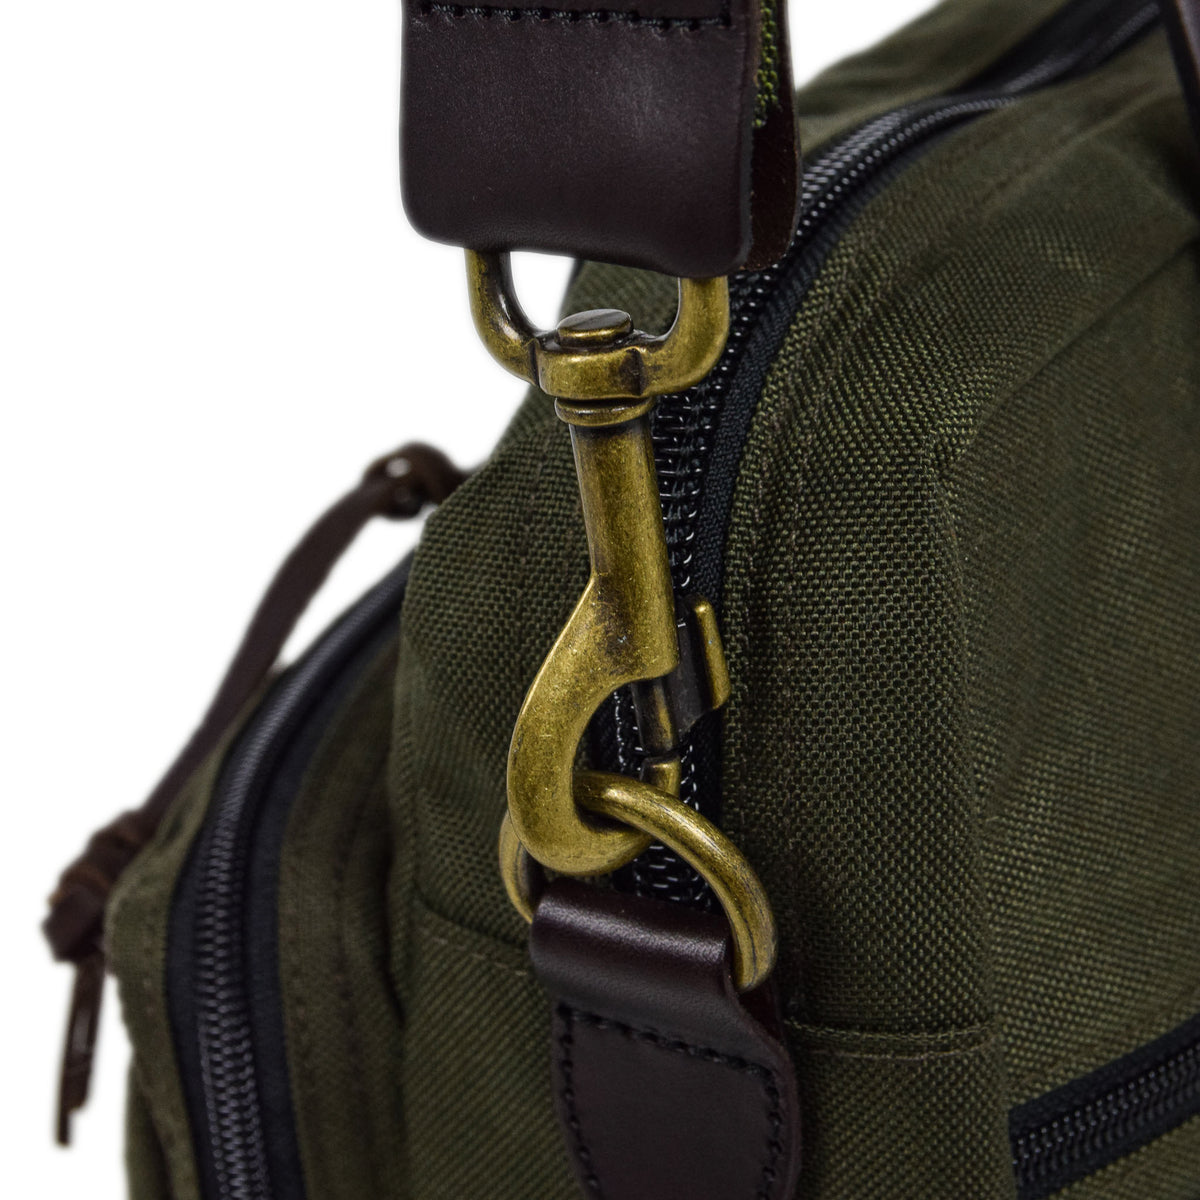 Filson Dryden Briefcase Shoulder Bag Otter Green Strap Attachment